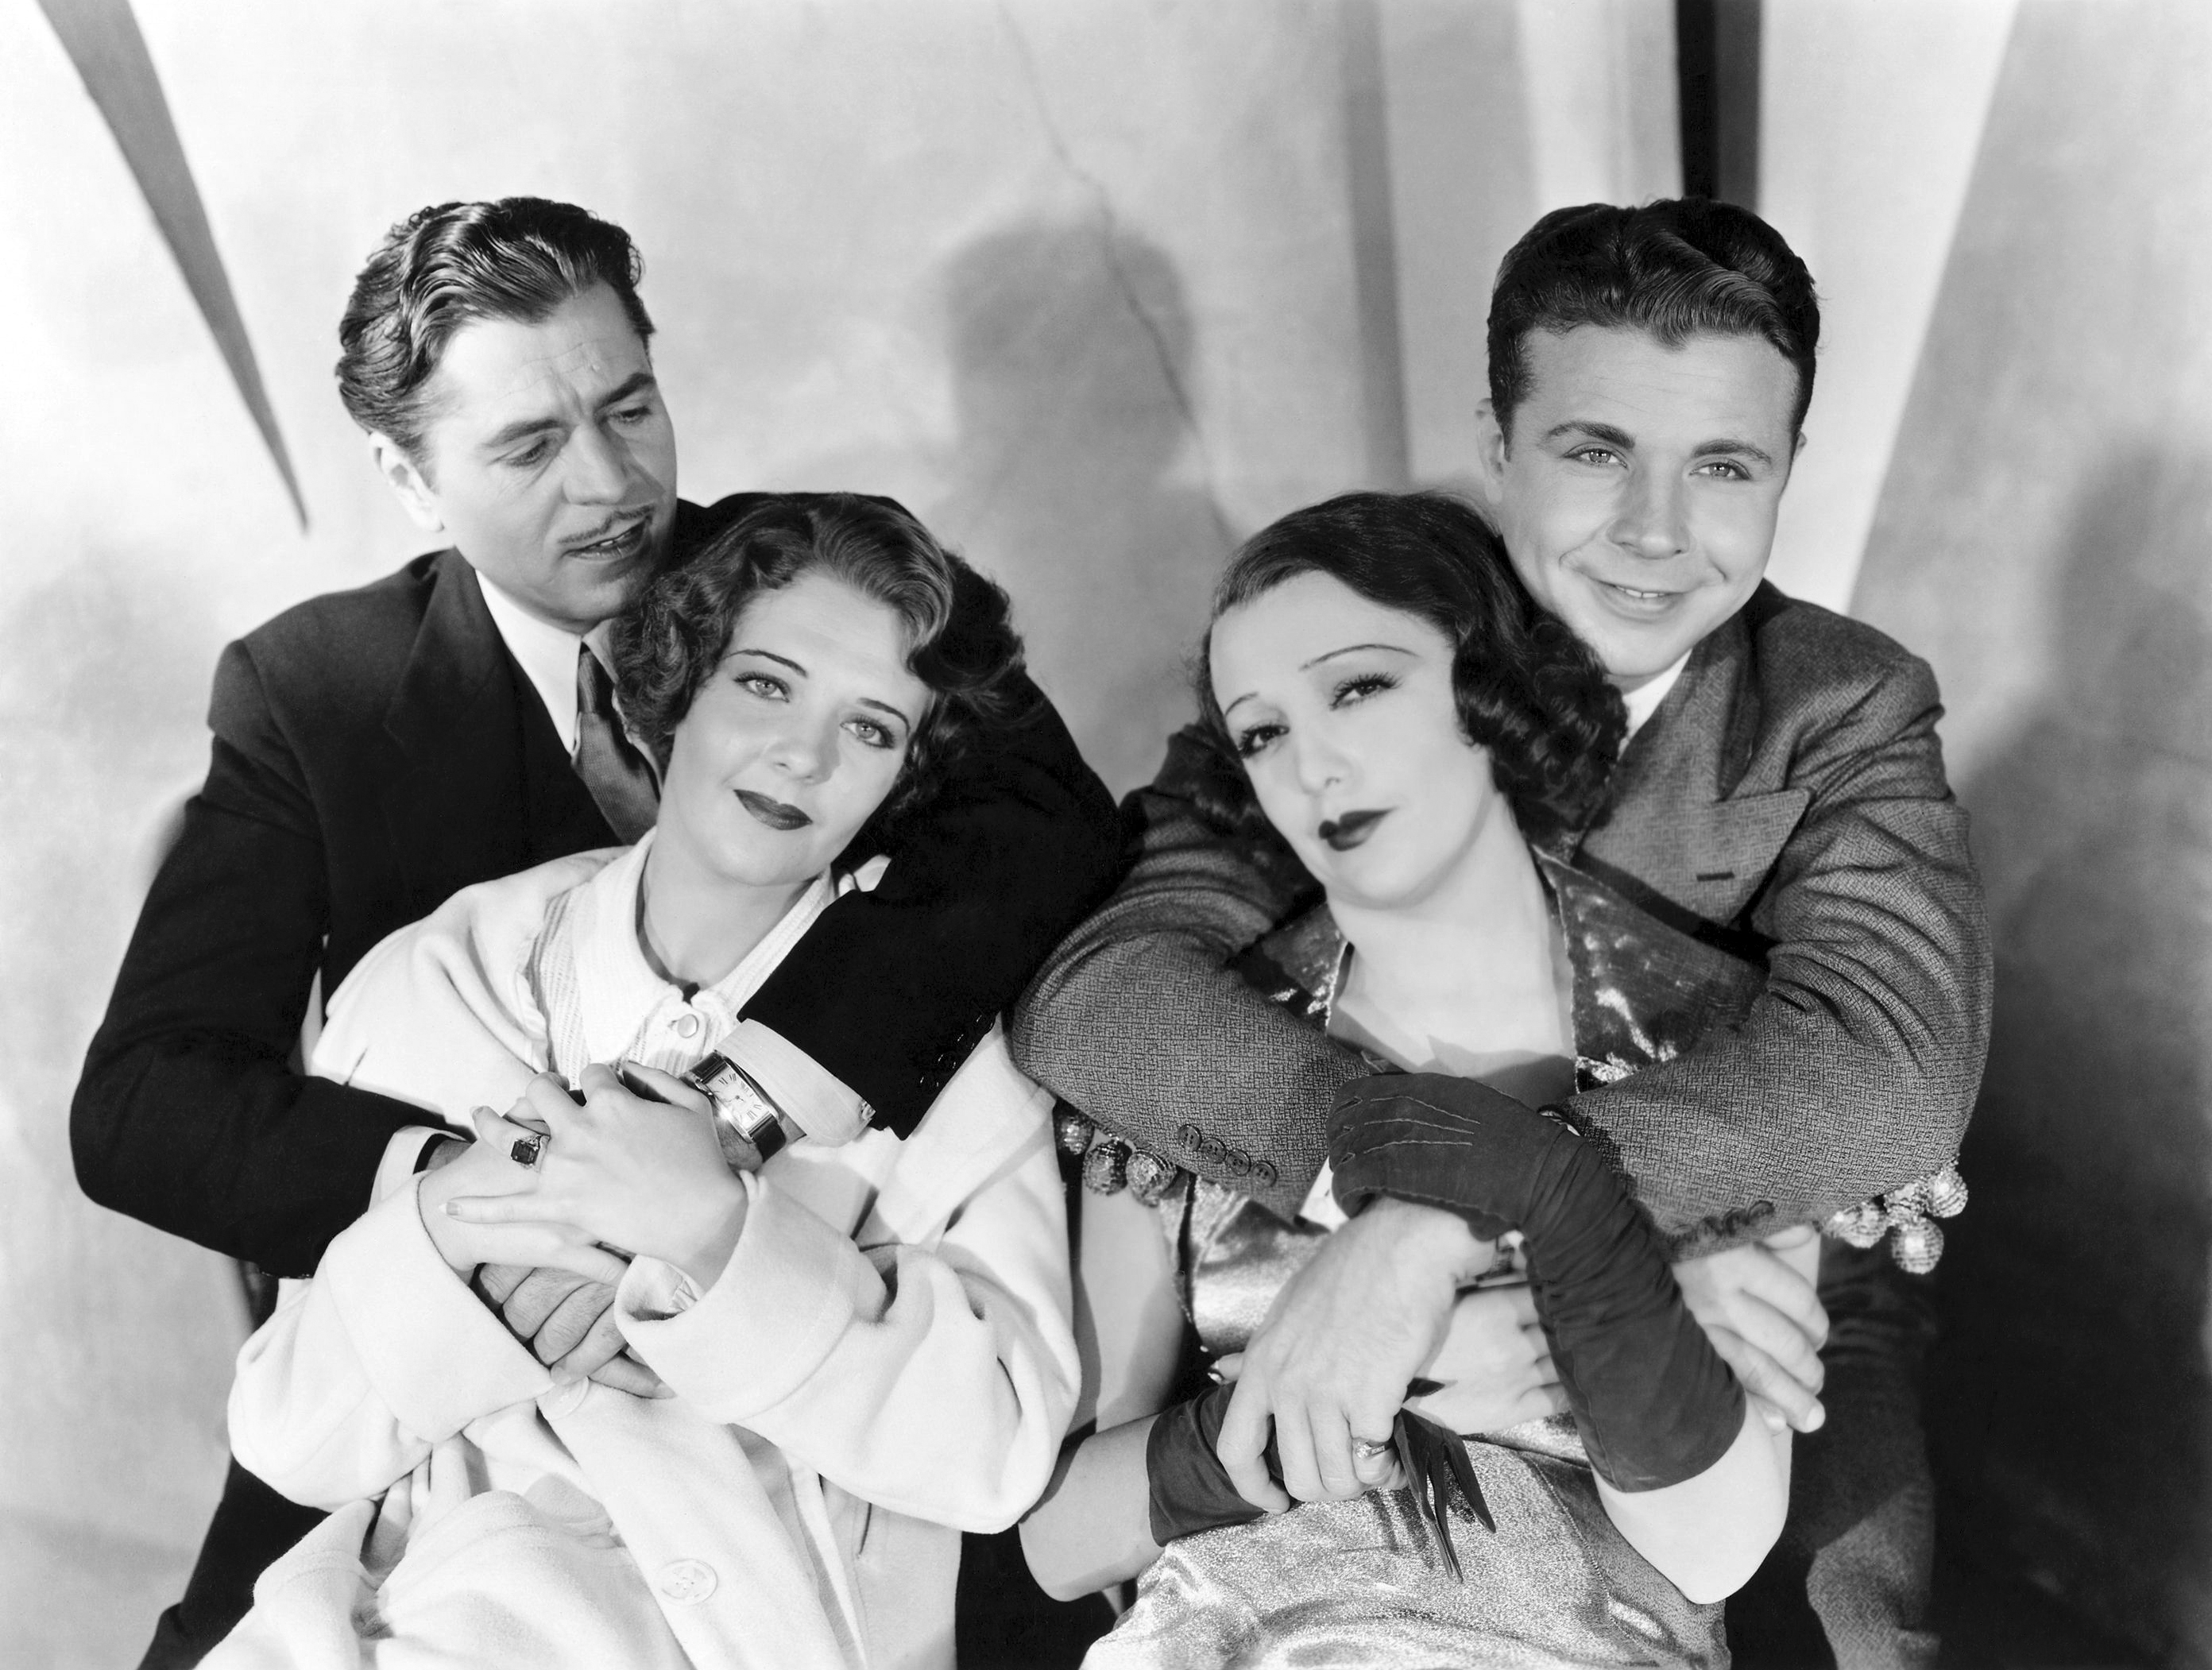 Ruby Keeler in 42nd Street with (L to R) Warner Baxter, Ruby Keeler, Bebe Daniels, Dick Powell (Courtesy of Sarah and MIchelle)